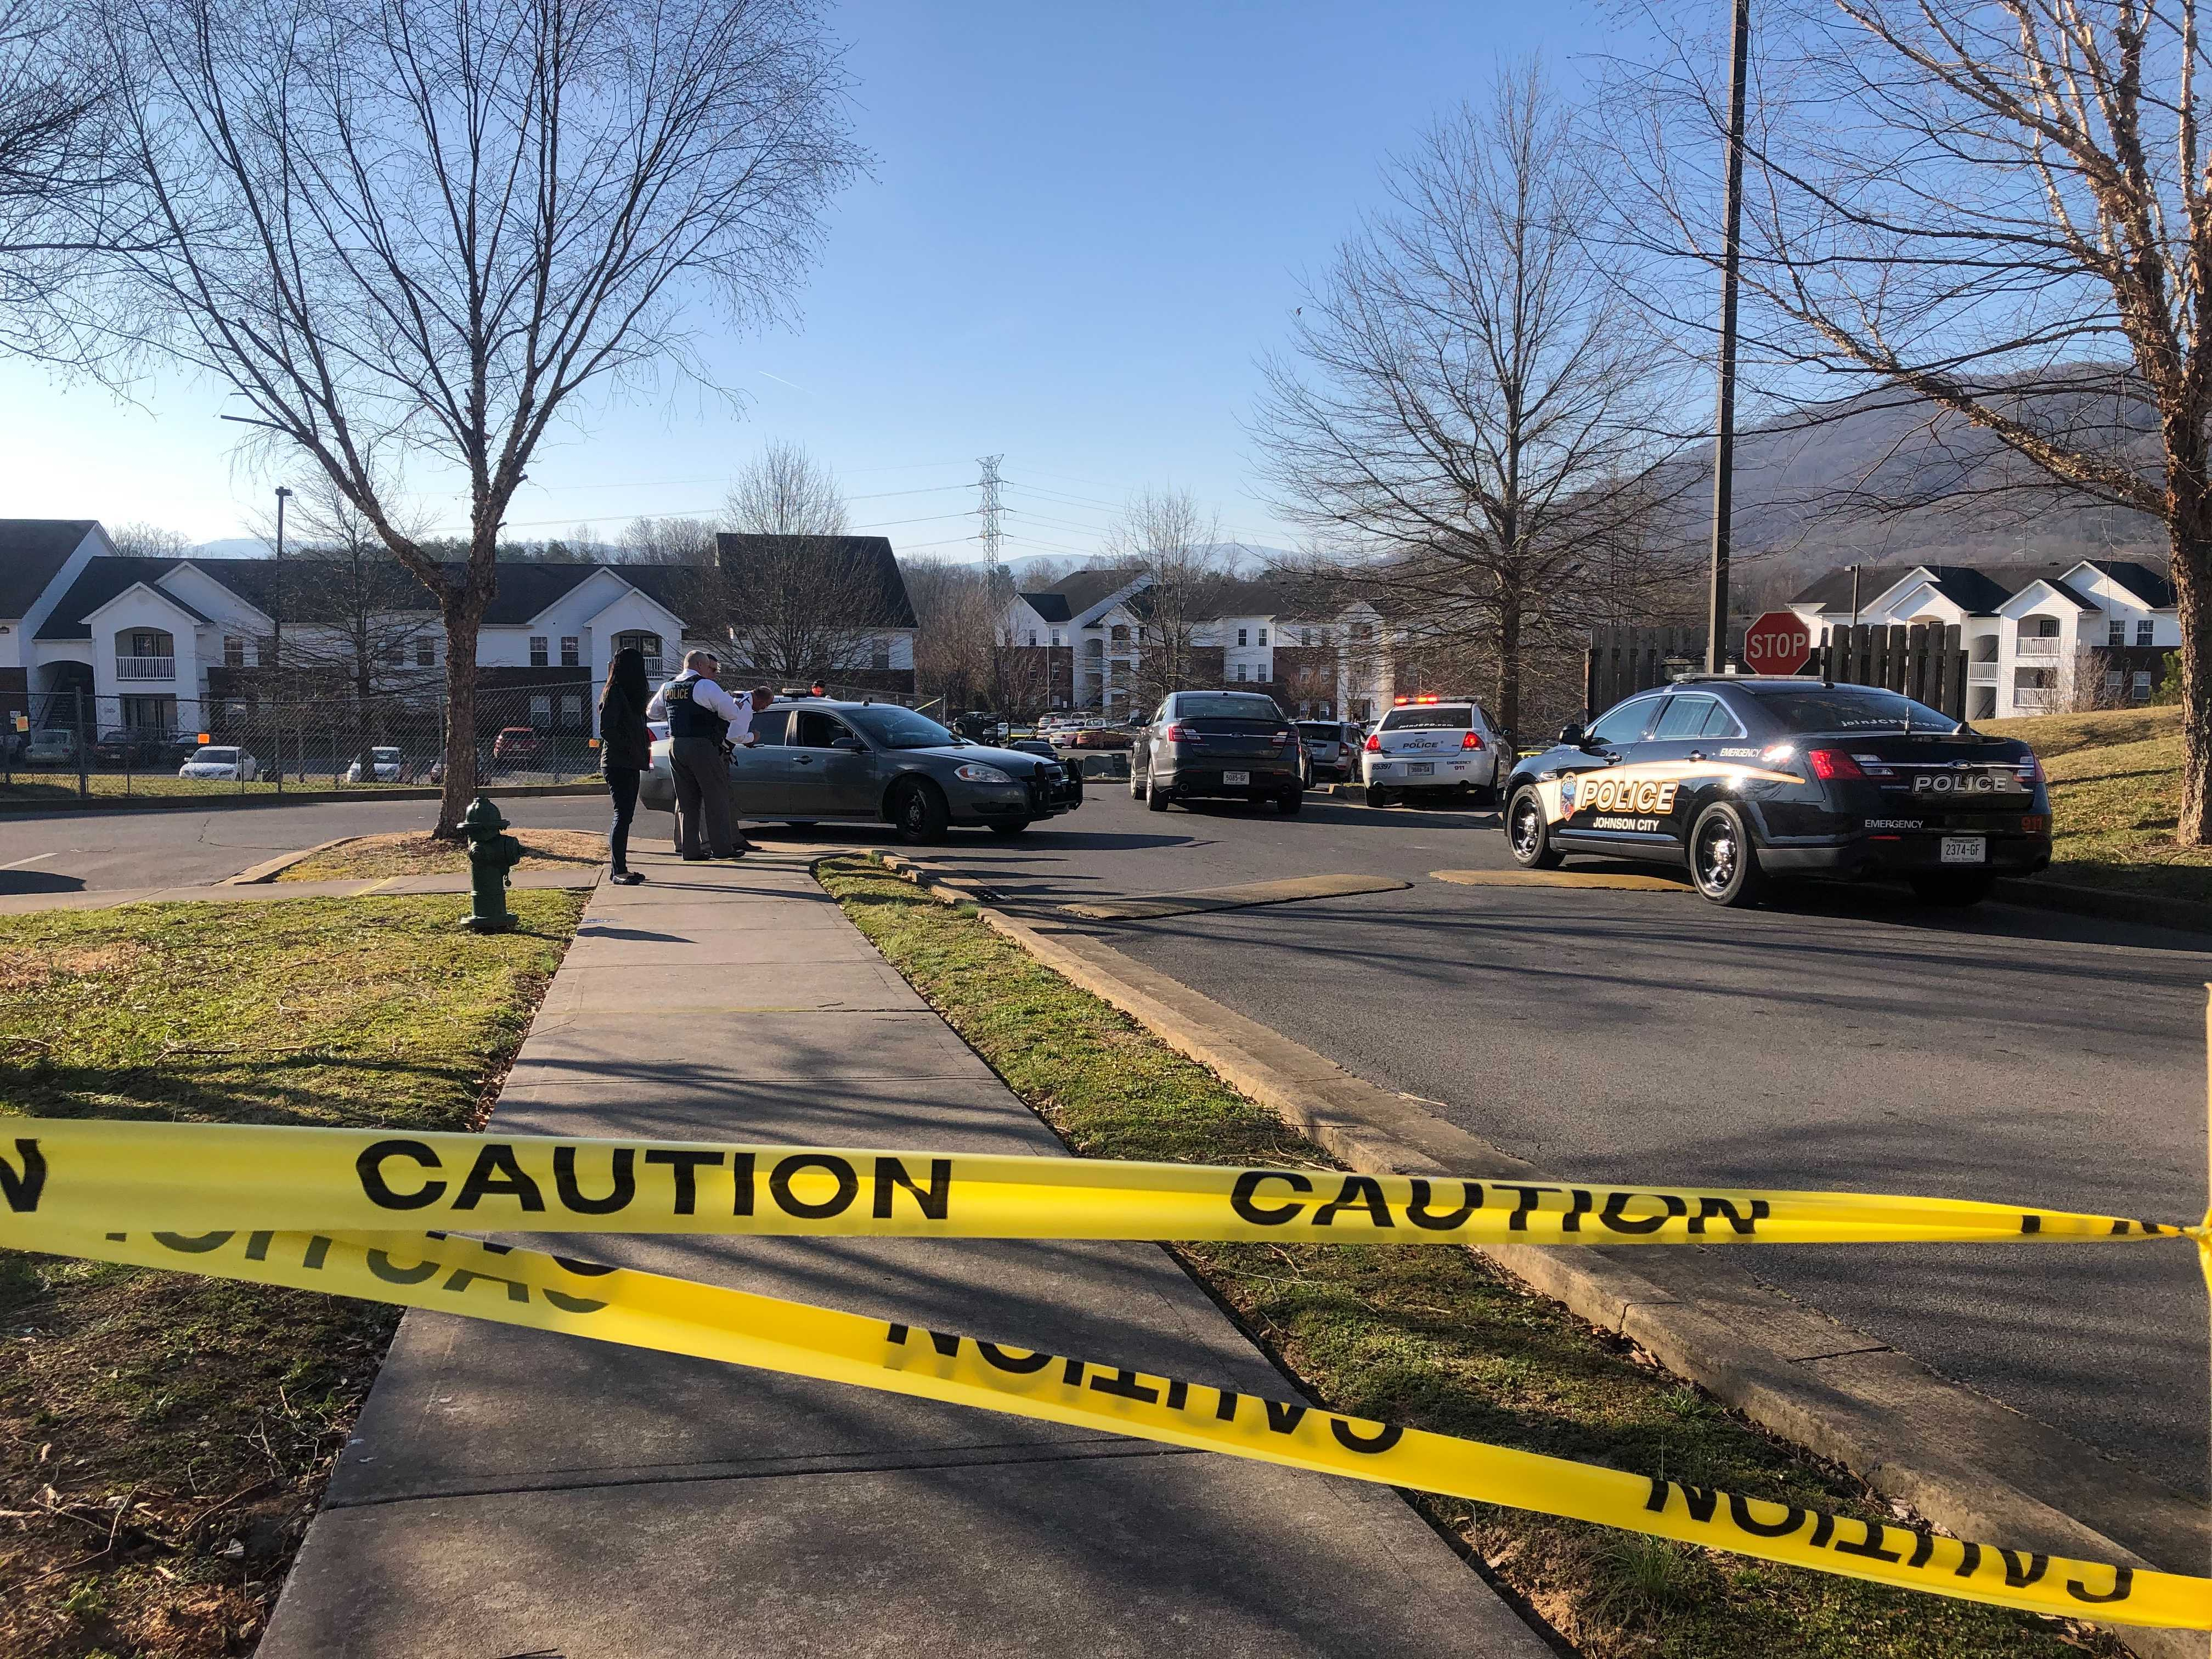 Update 17 Year Old Facing Murder Charge After Shooting At Johnson City Apartment Complex Parking Lot Wjhl Tri Cities News Weather